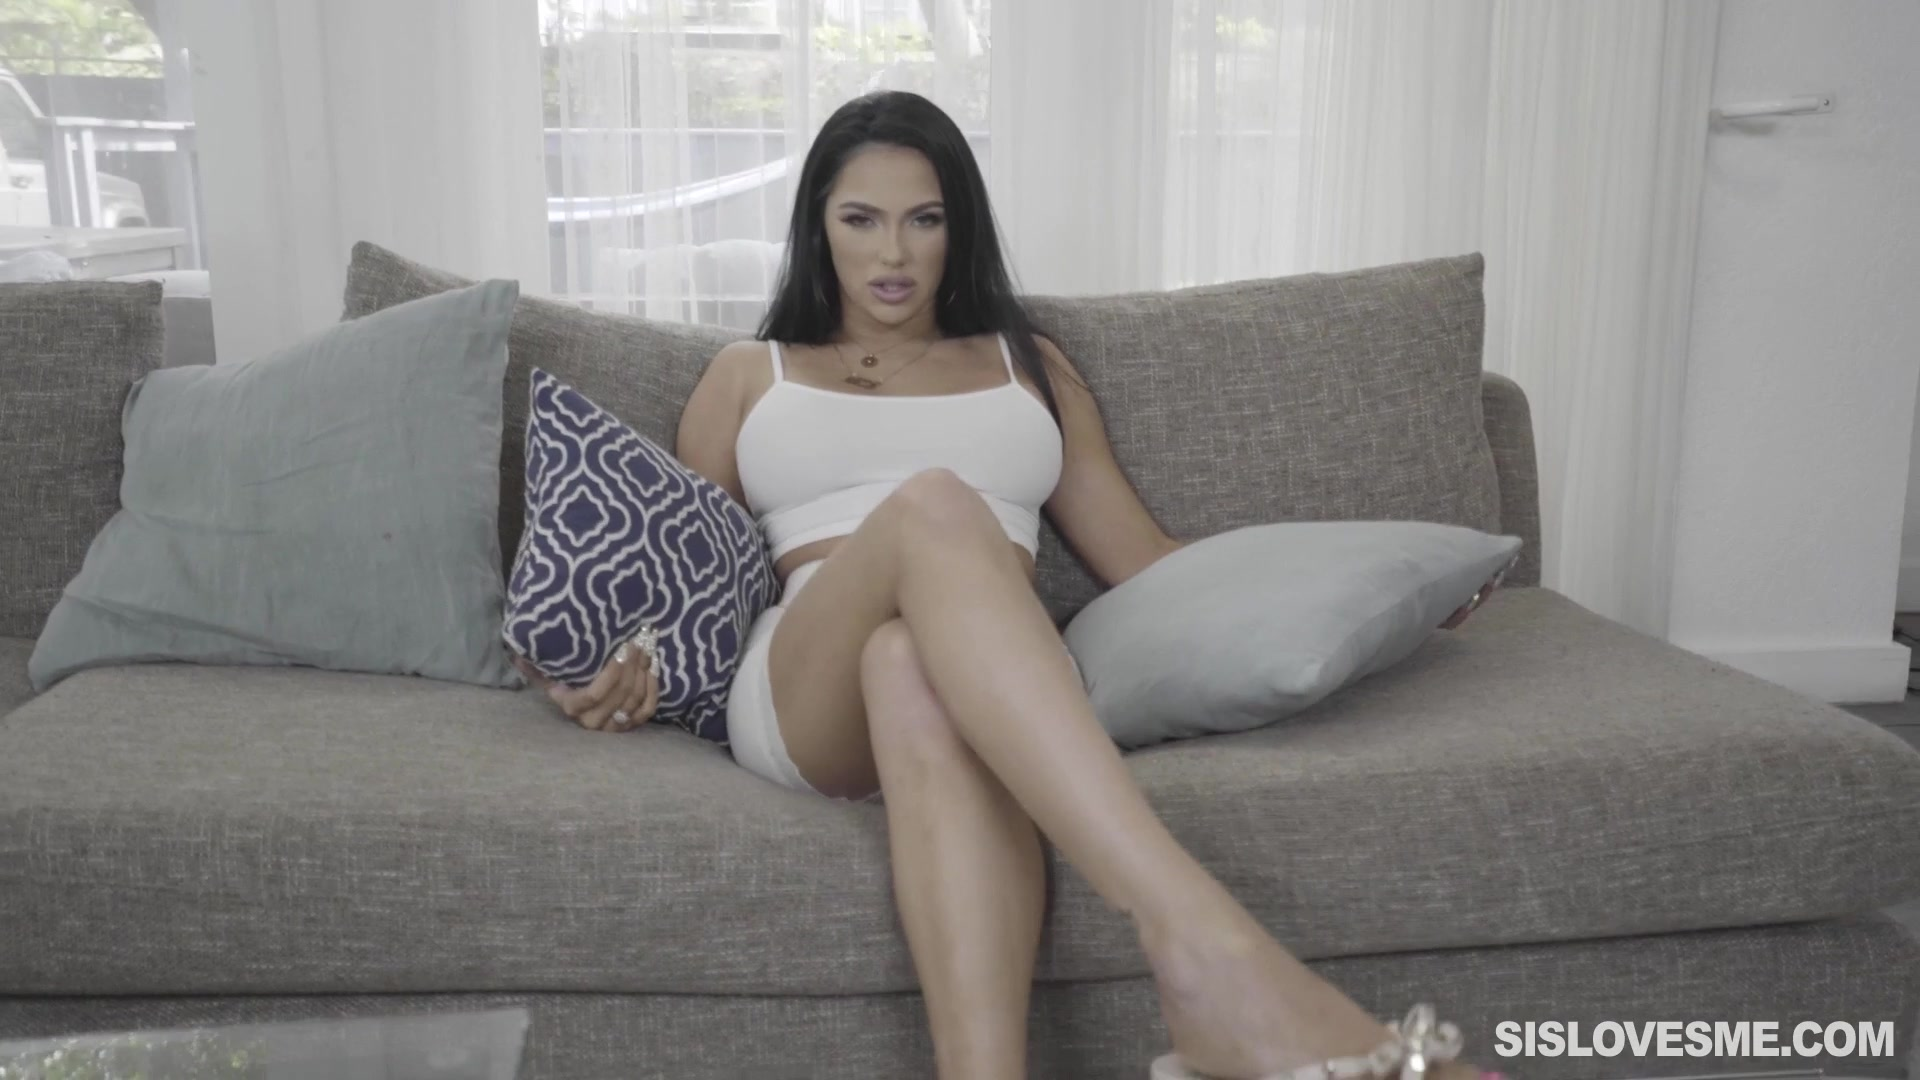 Excellent POV screwing with luscious Latina babe MJ Fresh